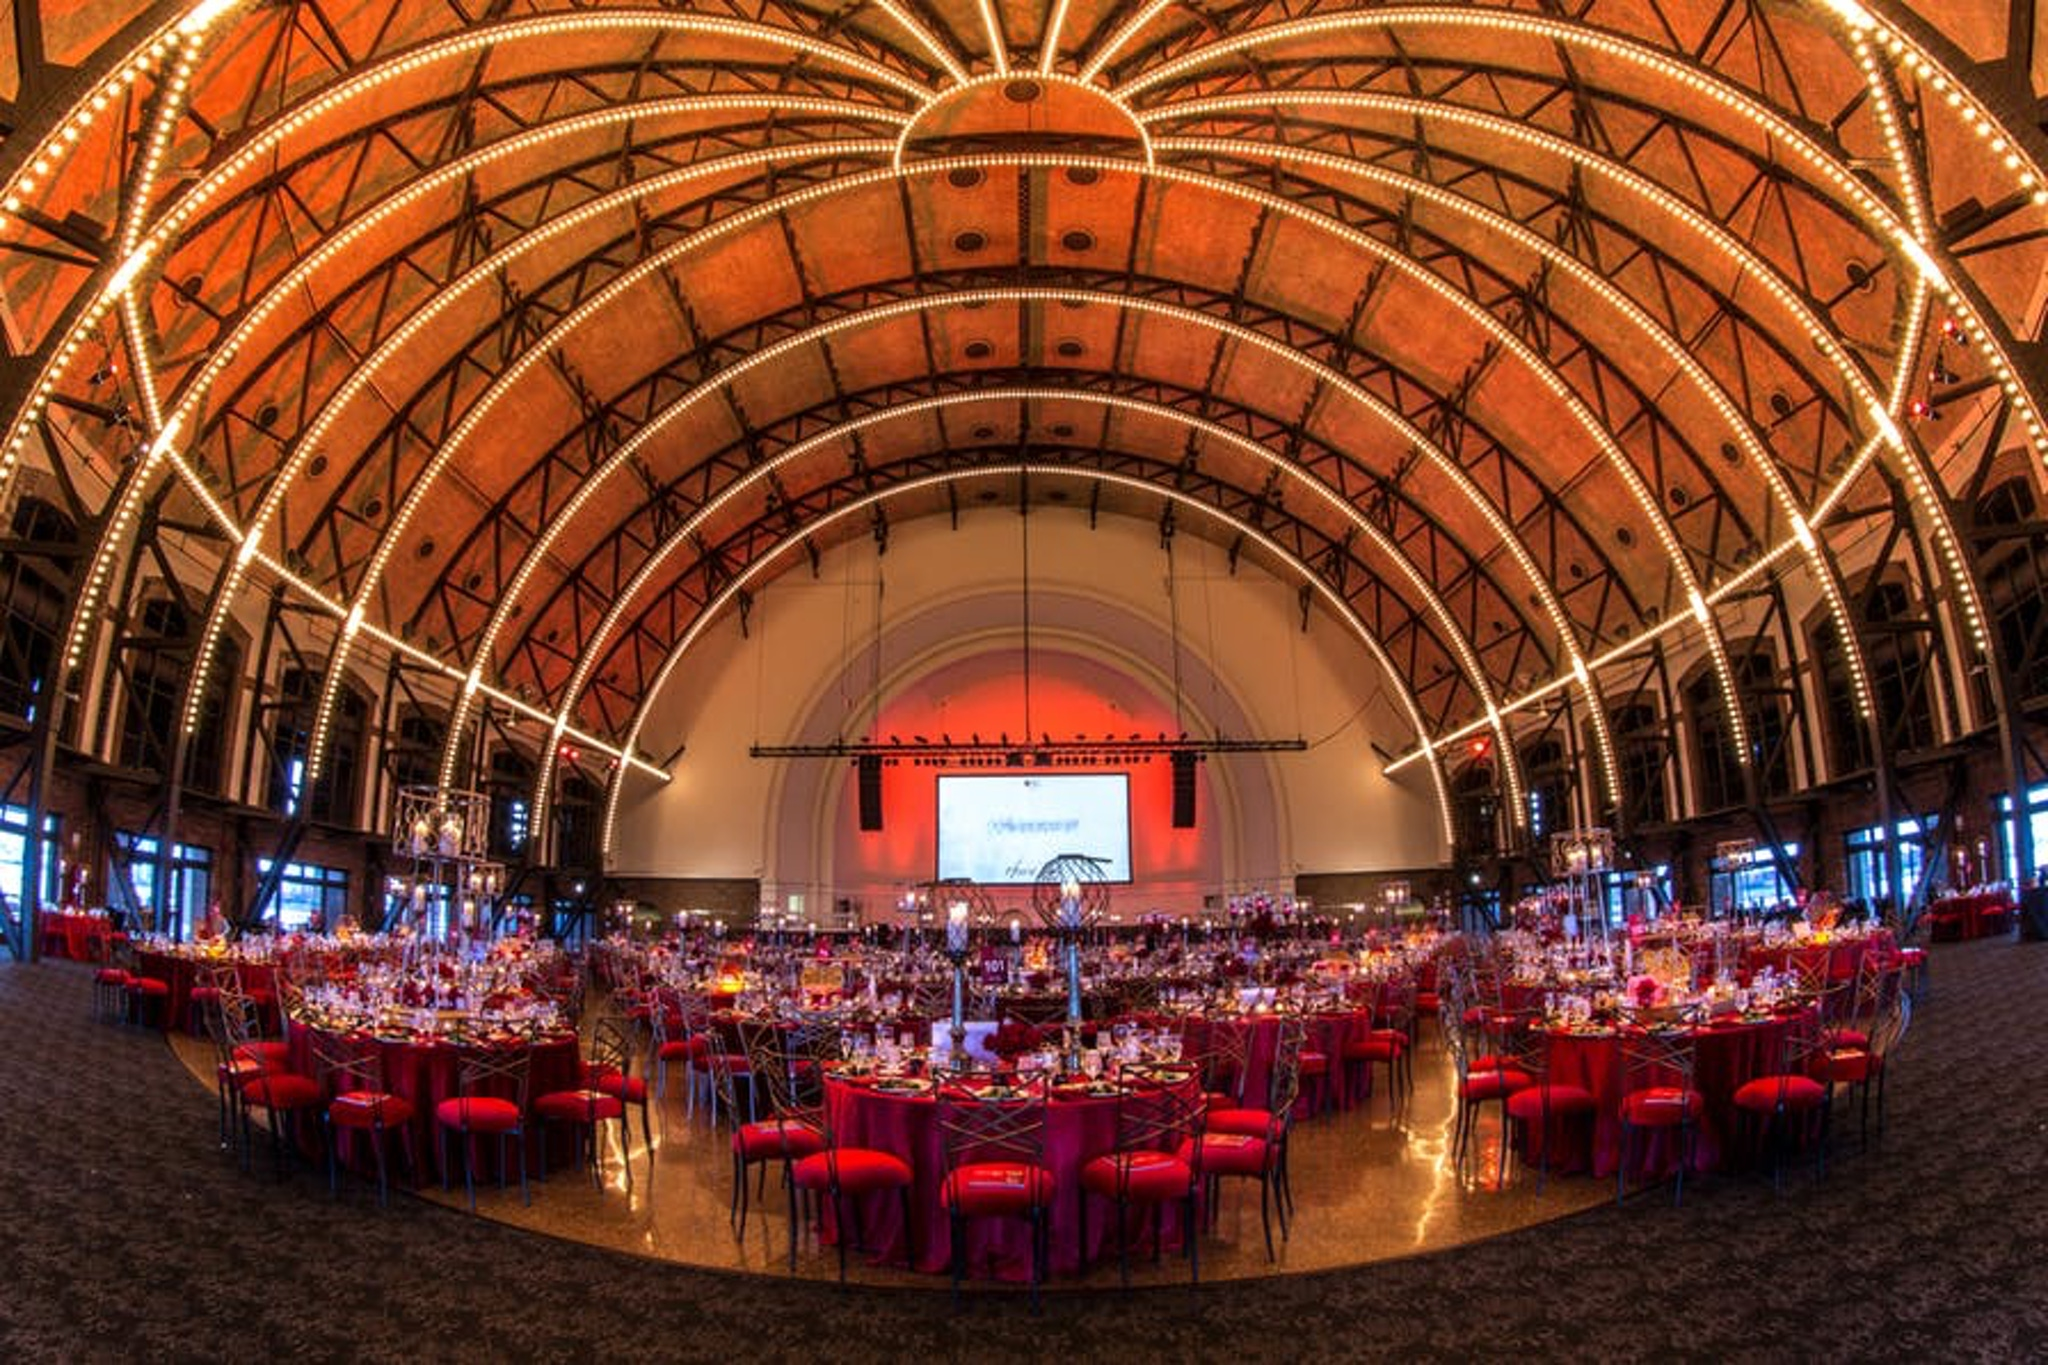 Event space with domed ceiling at Navy Pier in Chicago